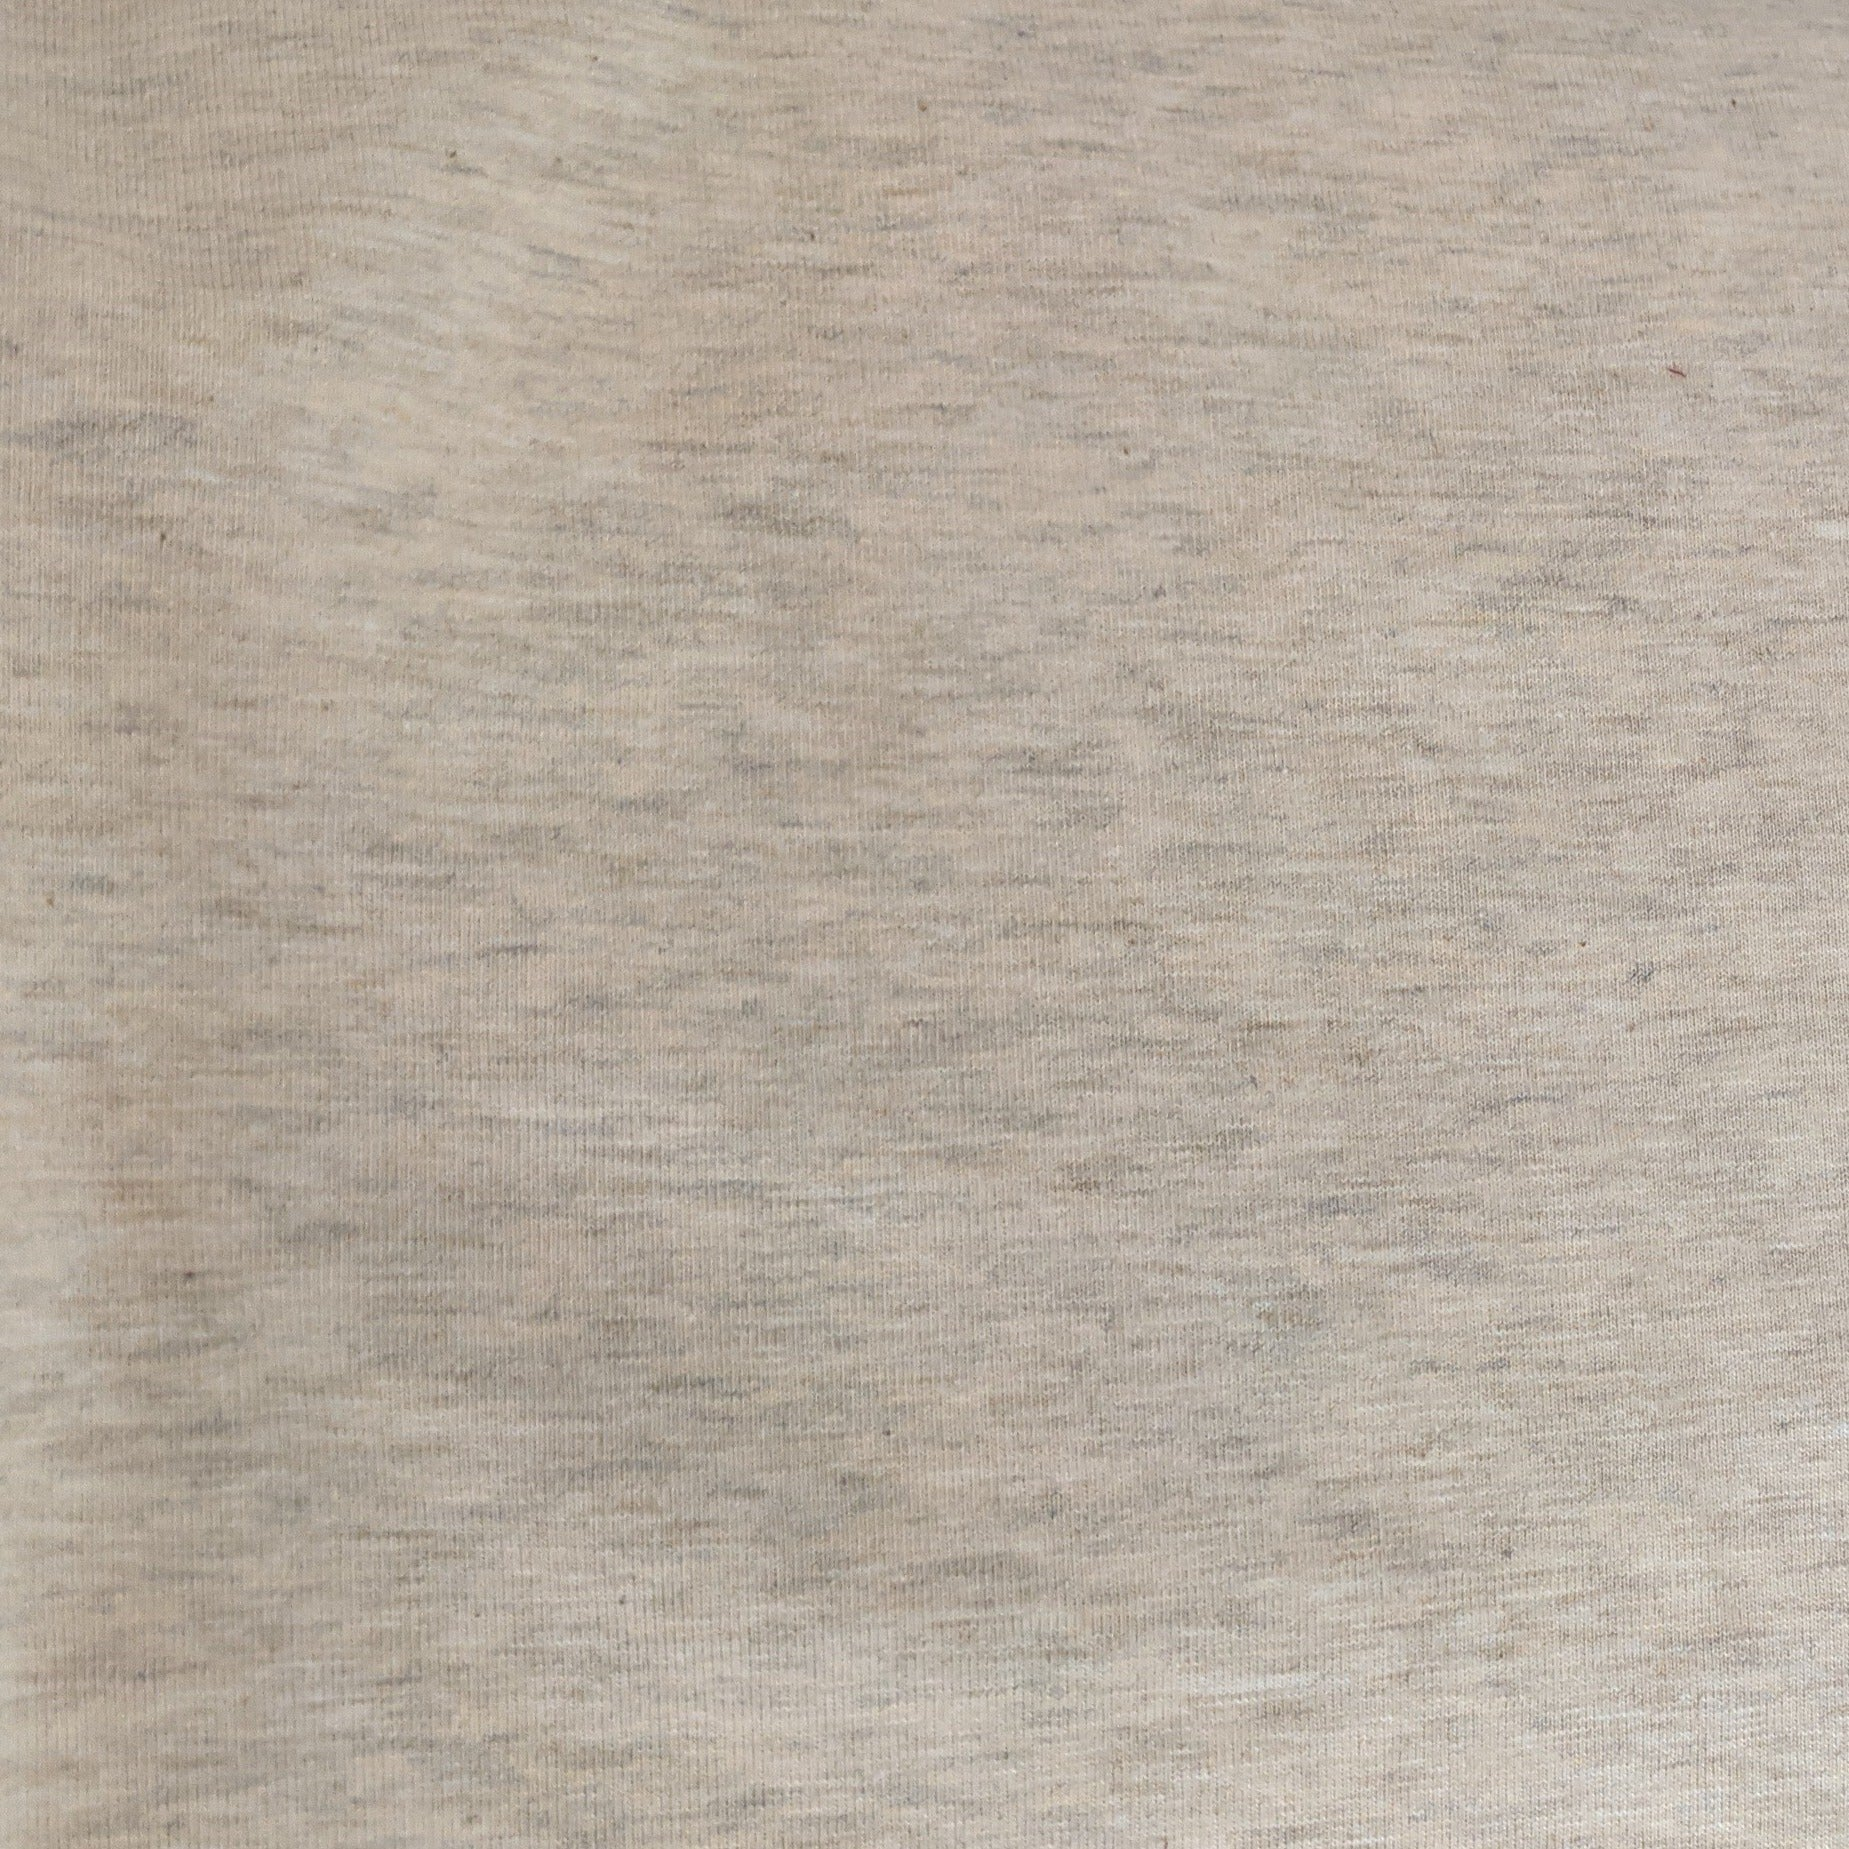 Oatmeal Heather  -  Jersey Knit (200 gsm)